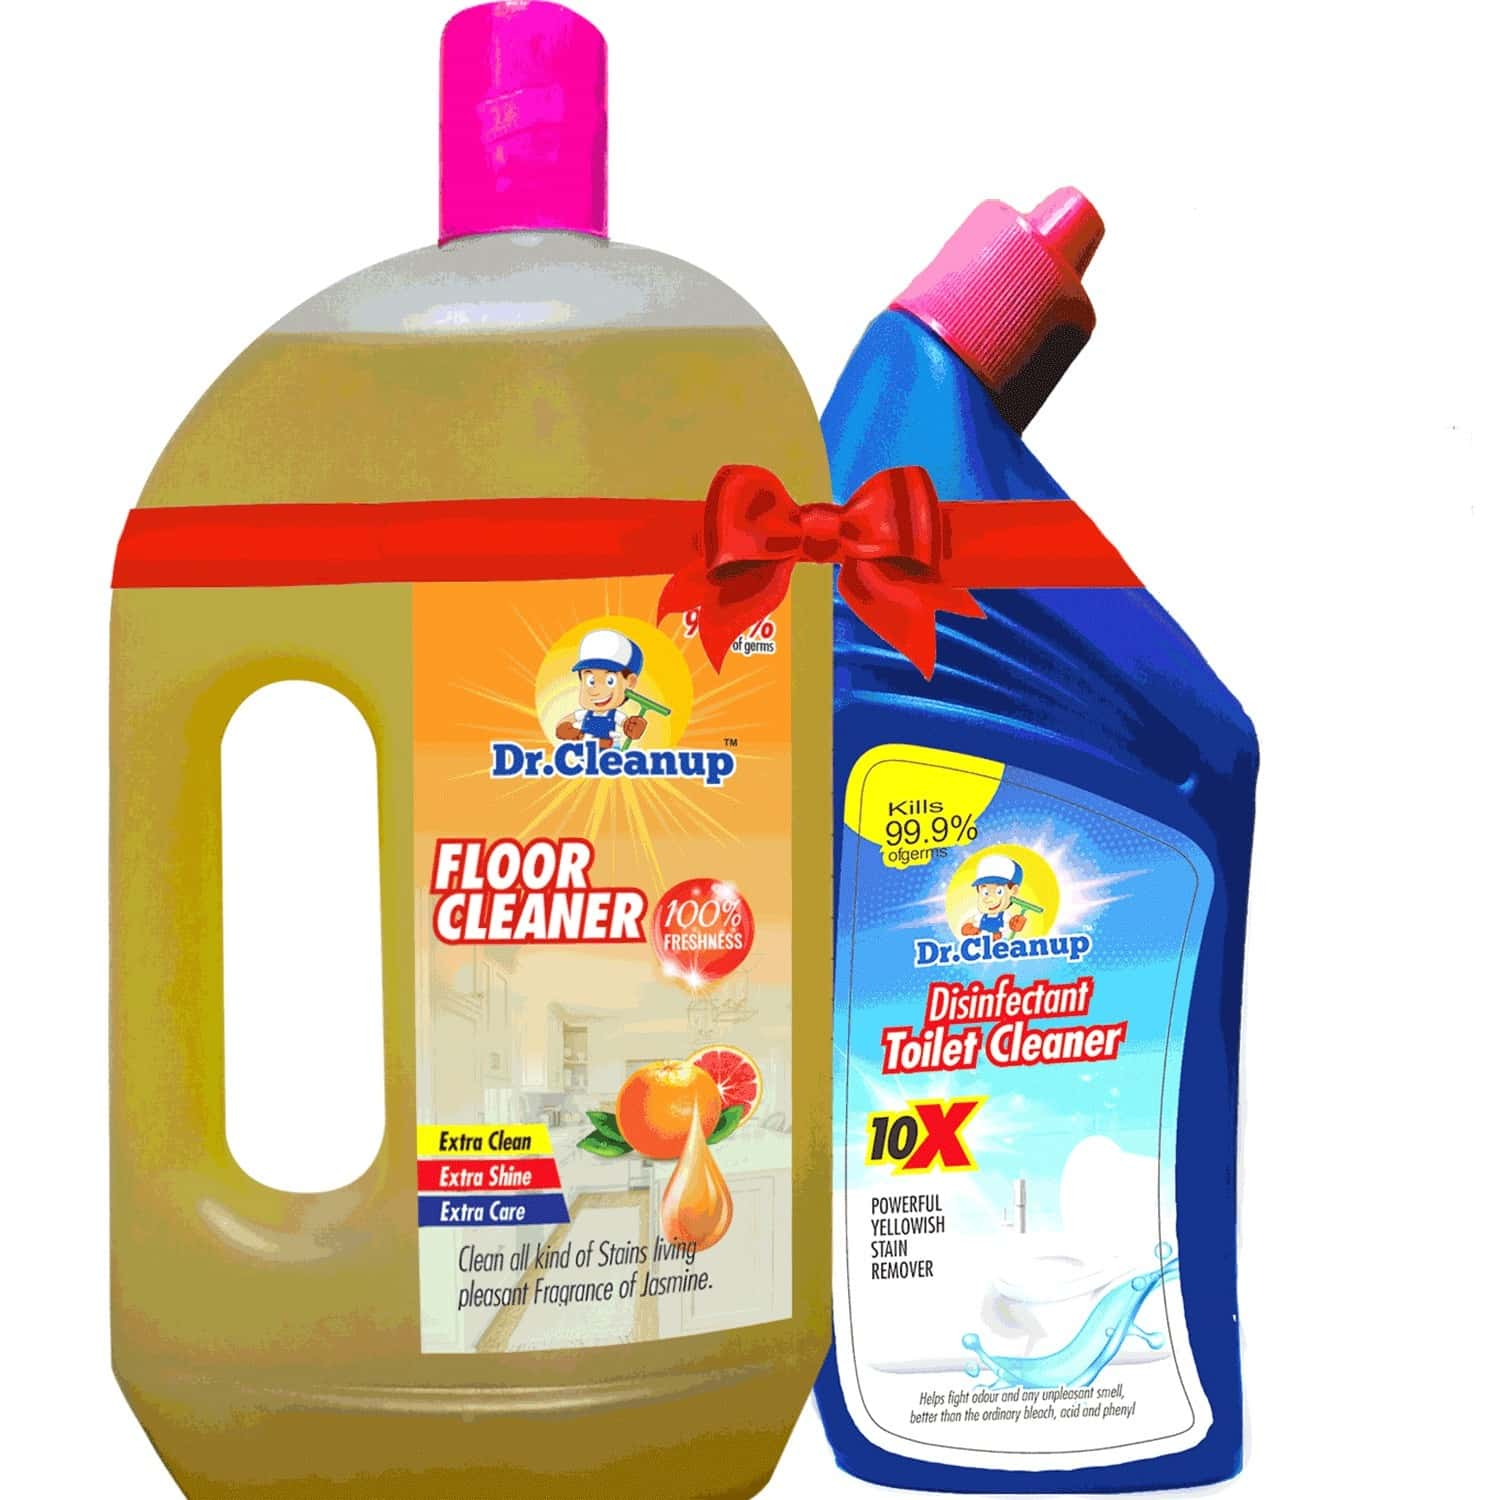 Dr Cleanup Citrus Floor Cleaner - 1000ml (free Dr Cleanup Toilet Cleaner - 500ml)